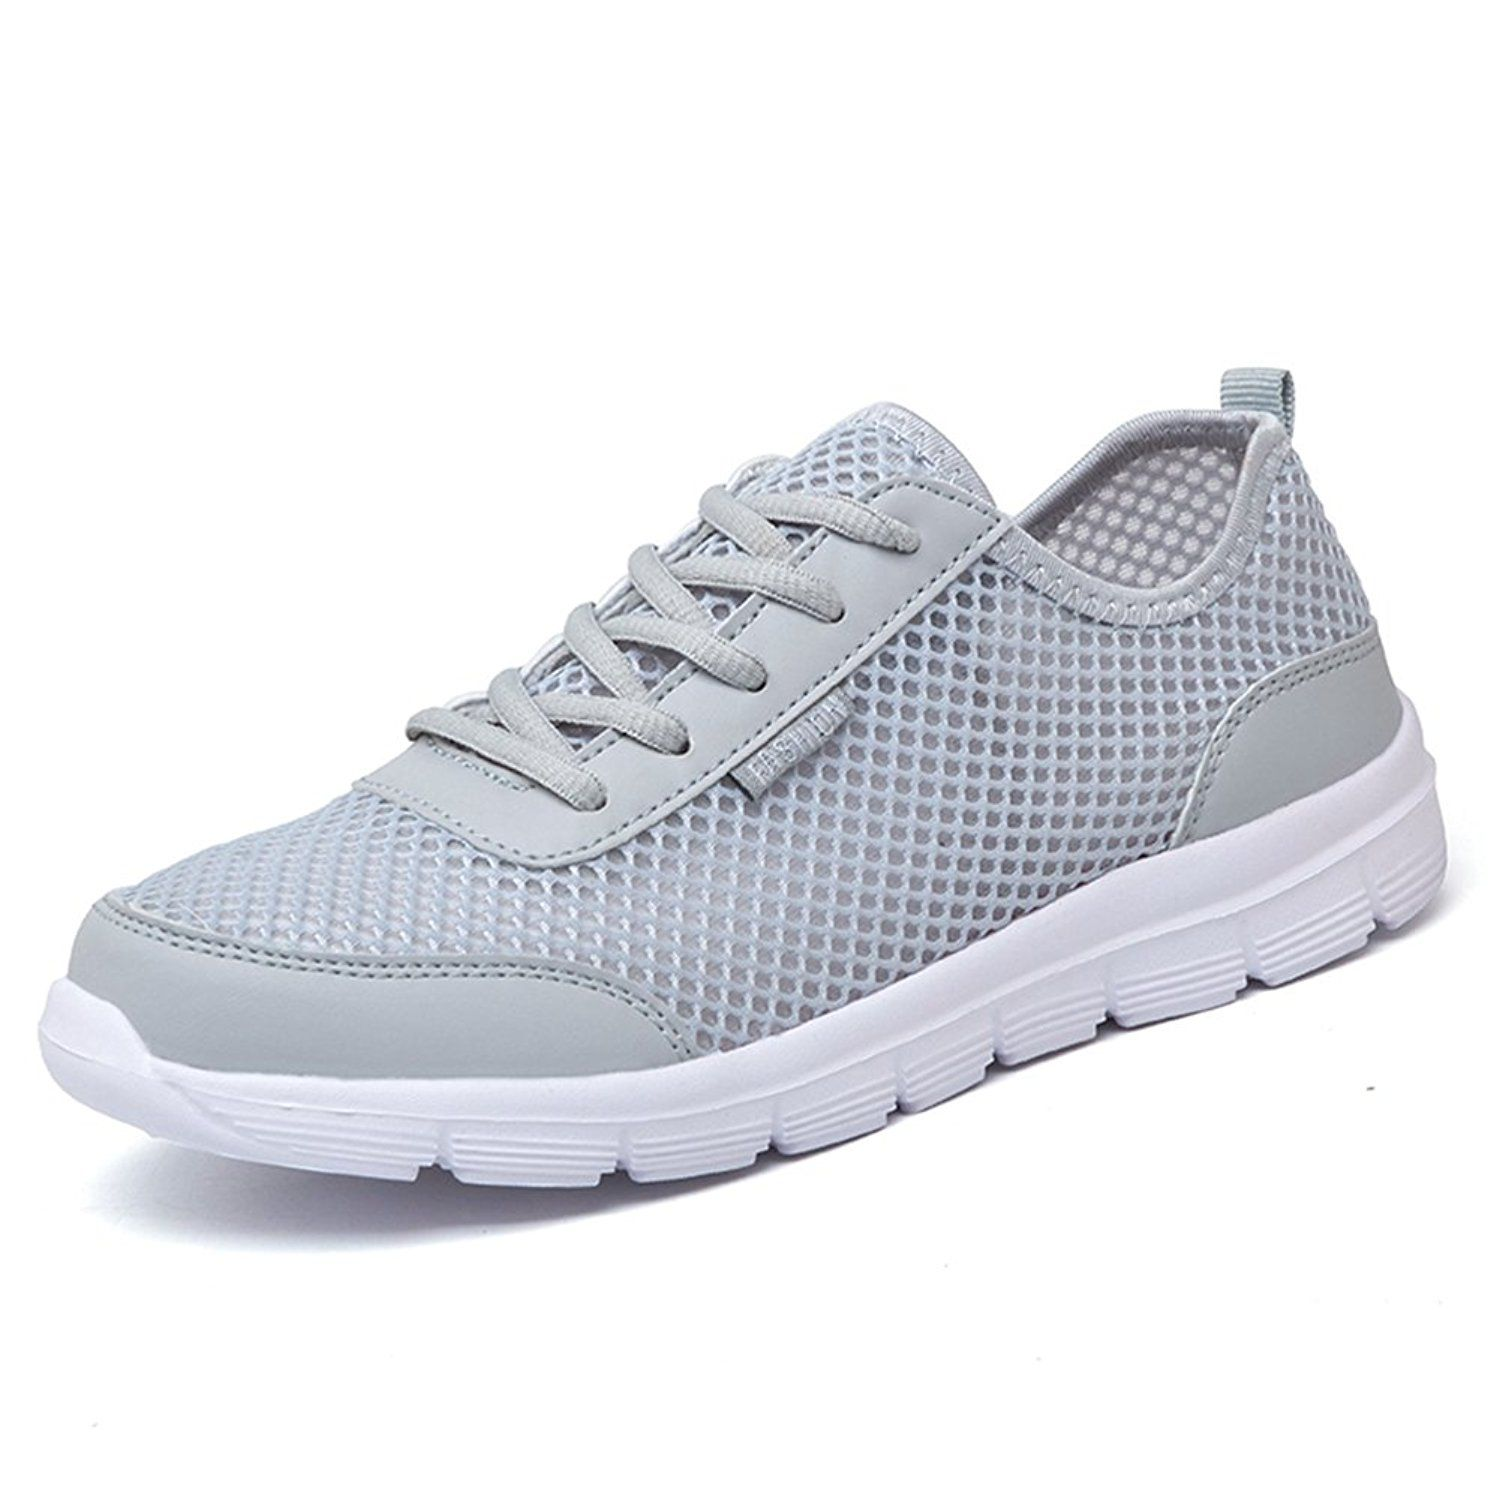 Shoes Womens Mens Casual Shoes Sneakers Lightweight Breathable Couples Shoes Student Running Shoes (Color : 3 Size : 41)